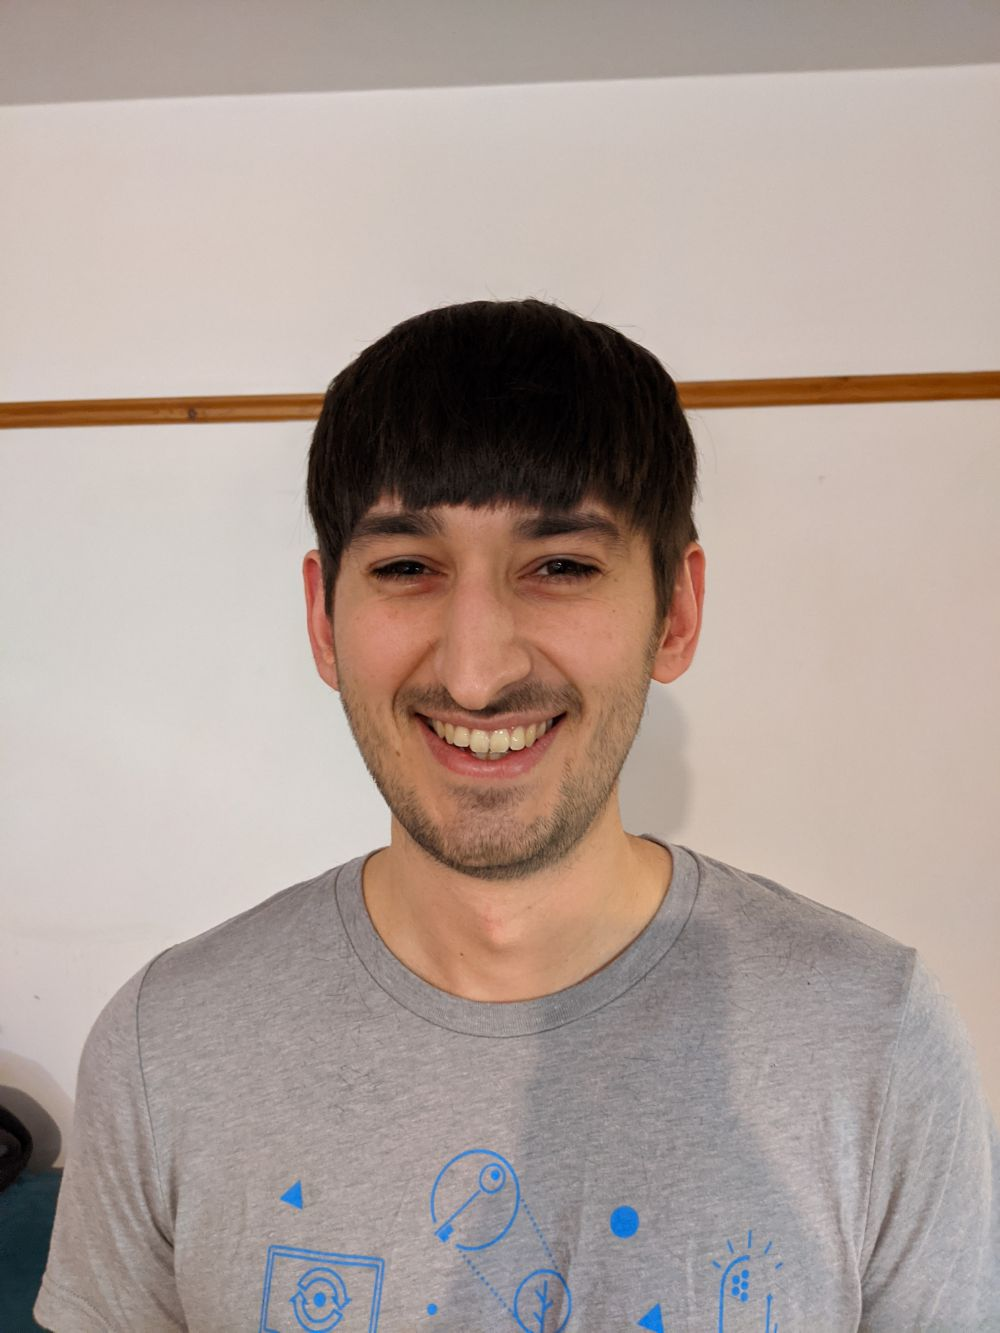 Photo of Jamie after the haircut, showing his beard very closely trimmed to just a bit more than stubble, with his hair up just above his eyebrows, with much more of his face now visible